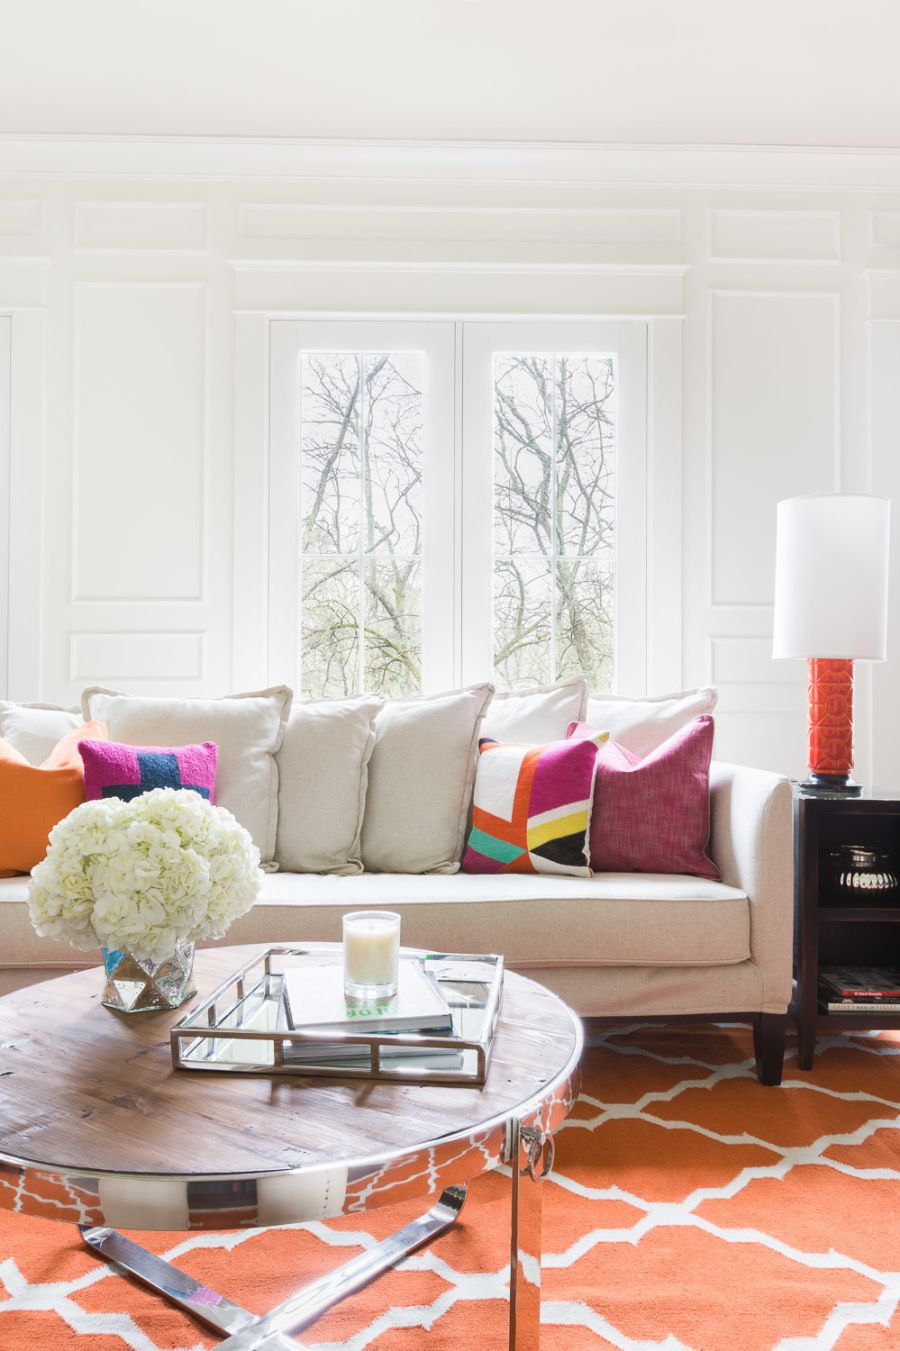 10 Bright Tips For Adding Color To Your Home Interior  # Muebles Dany San Joaquin